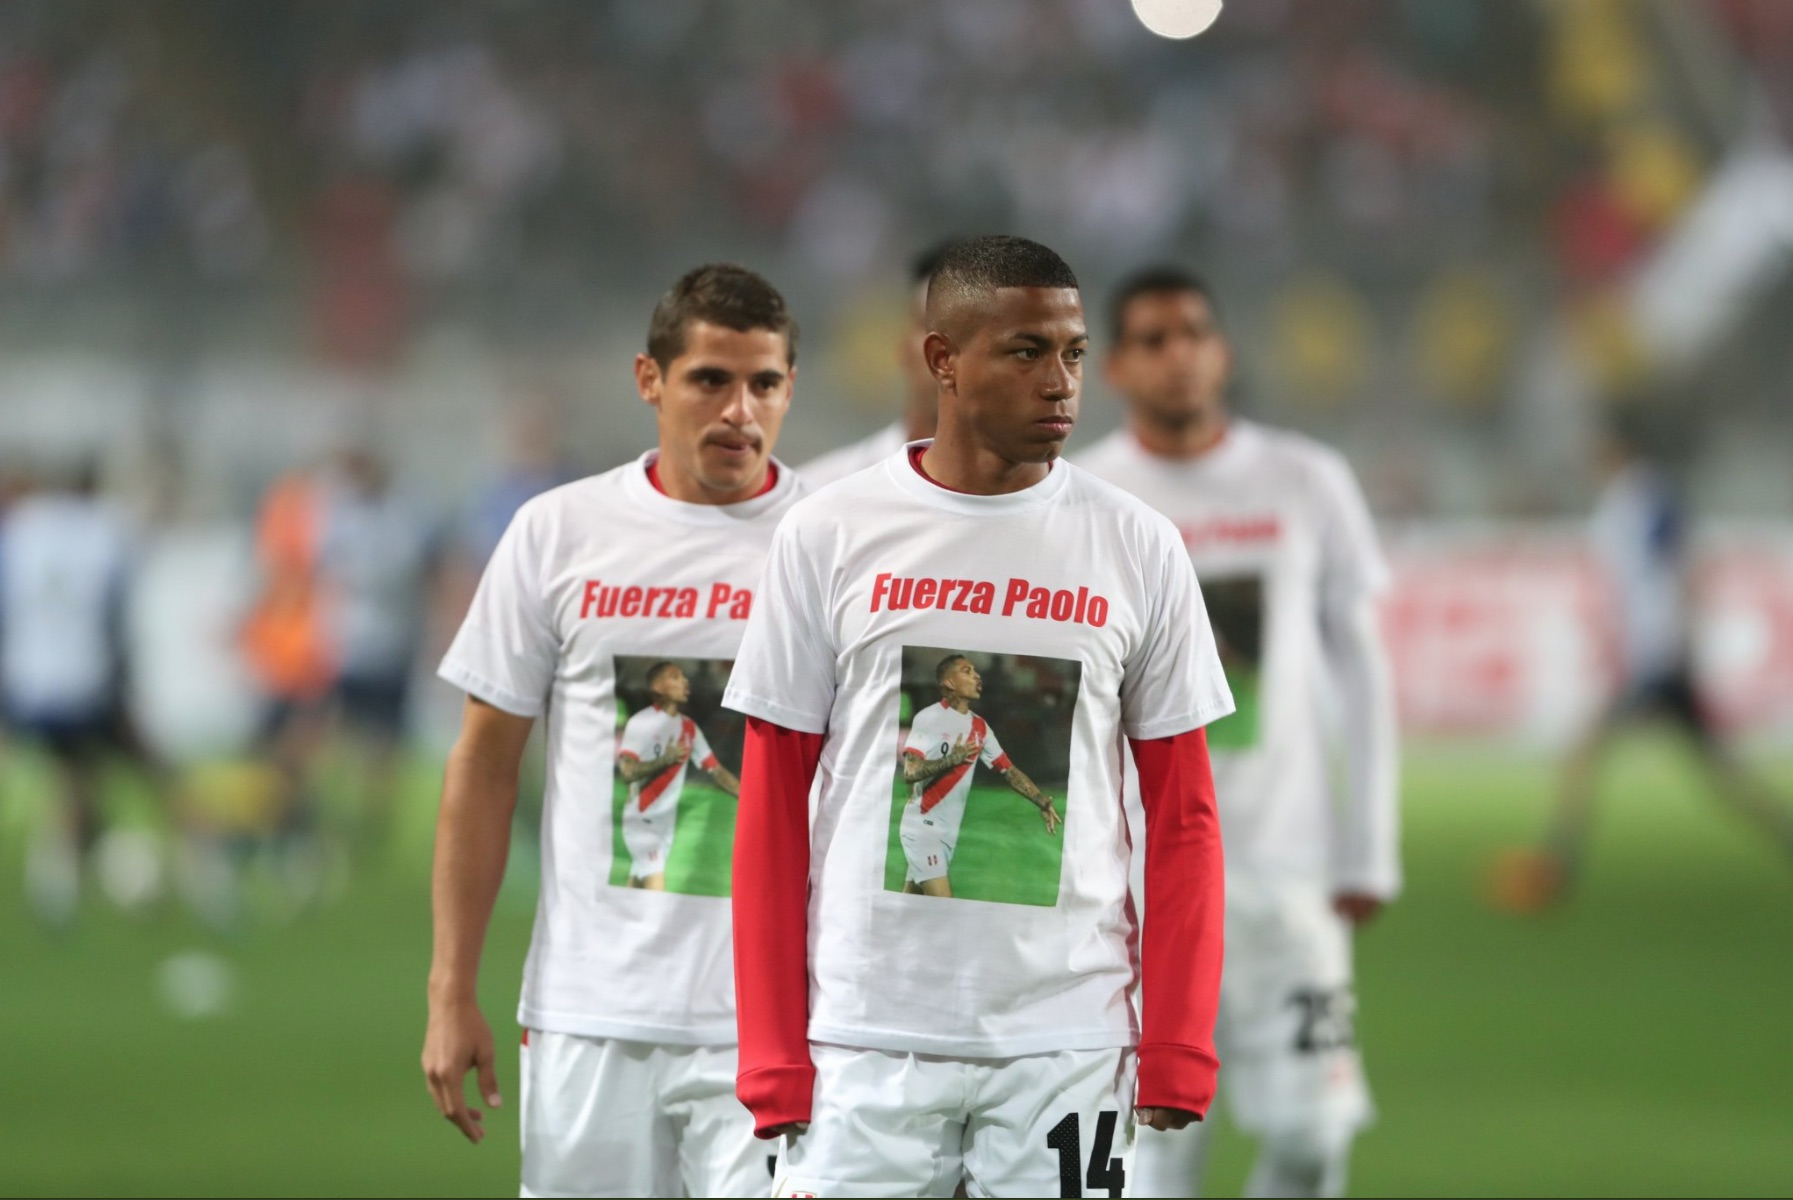 Paolo Guerrero May Not Be Playing in Russia, But He's Still the Star of Peru's World Cup Merch